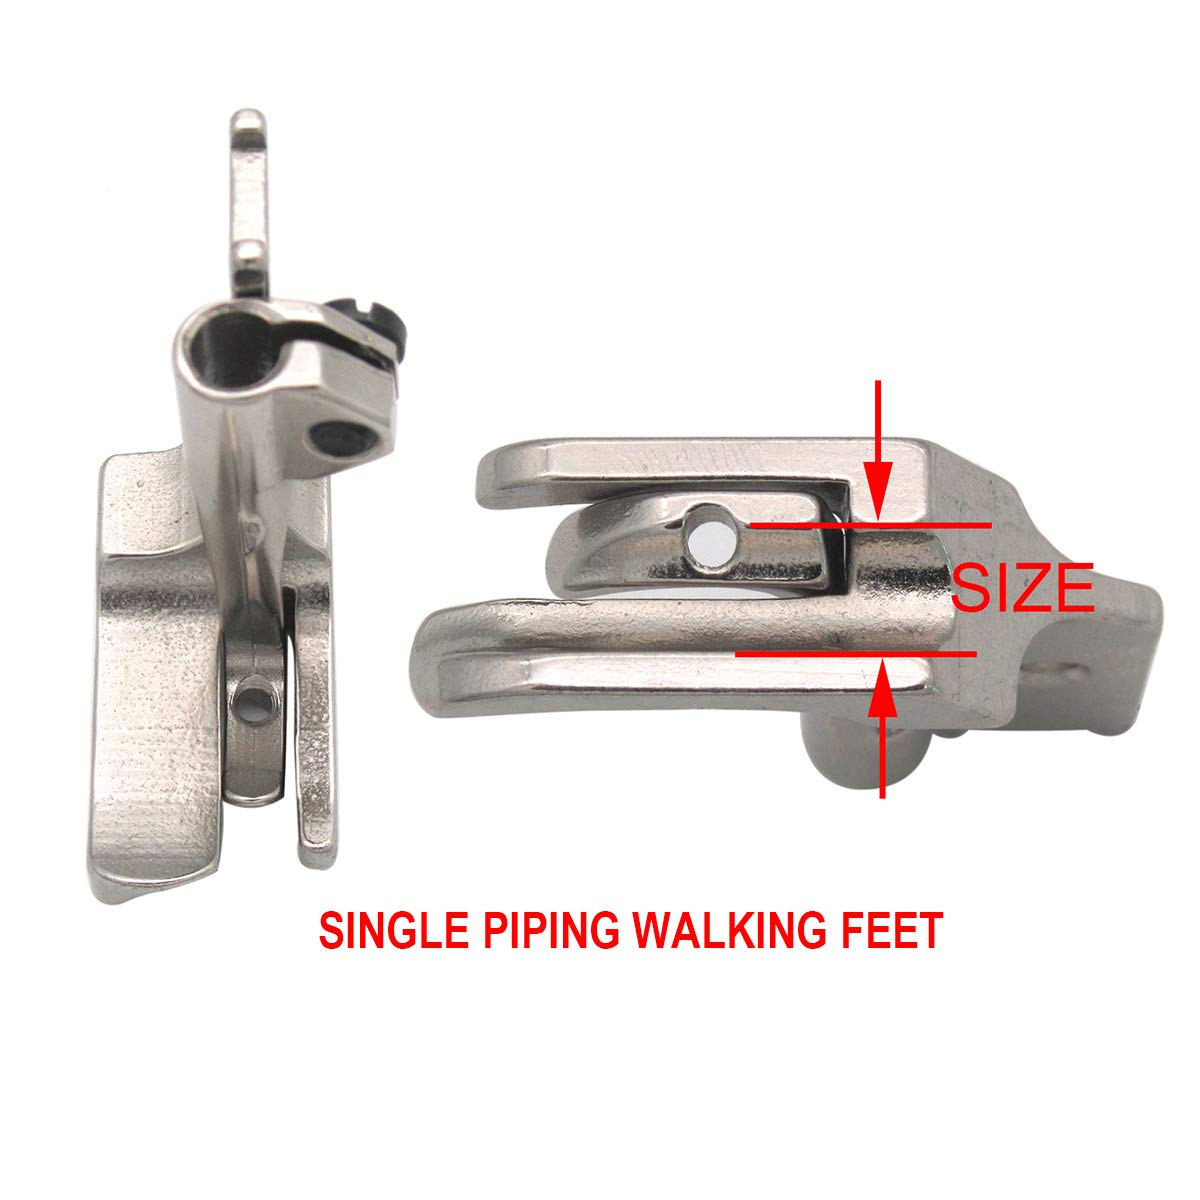 SINGER 111W,221W DOUBLE WELT PIPING CORDING,WALKING FOOT WITH EDGE GUIDE